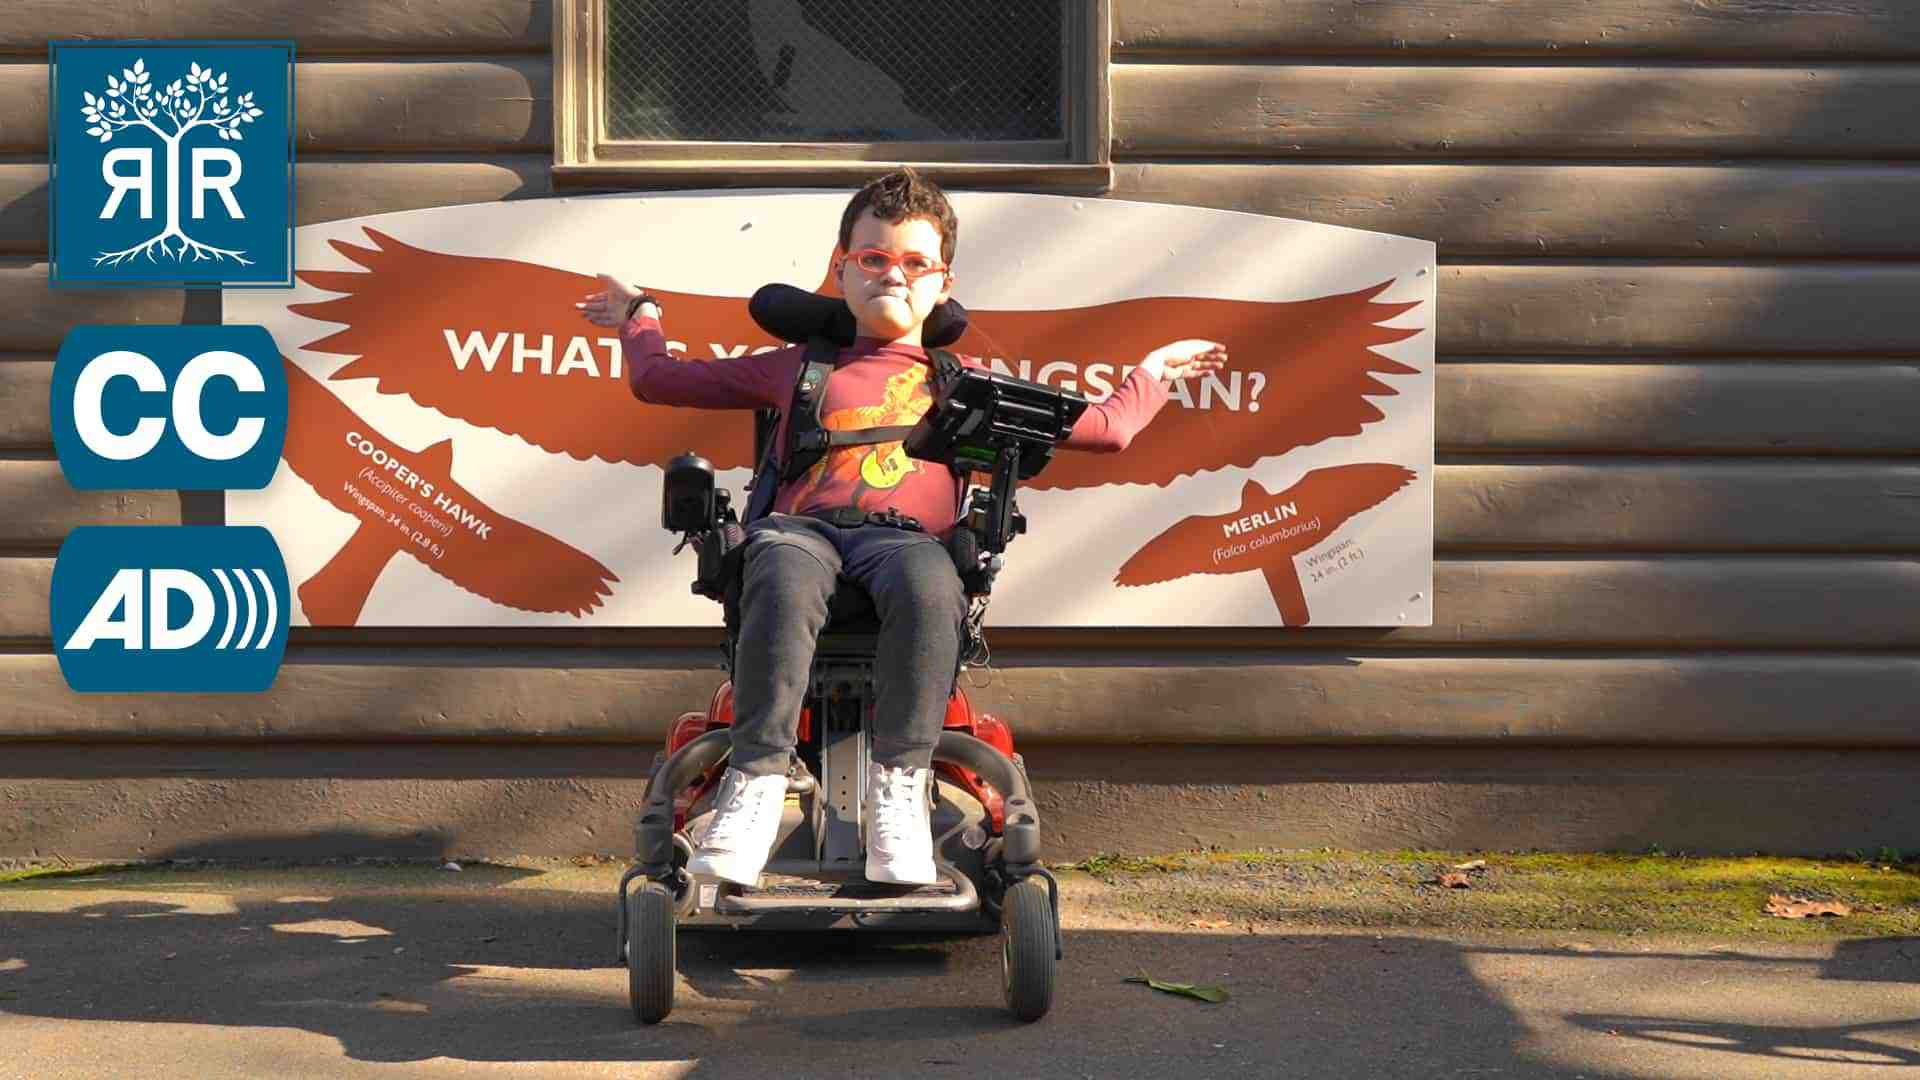 Julian sits in his power chair and raises his arms against a poster of a hawk's wingspan.